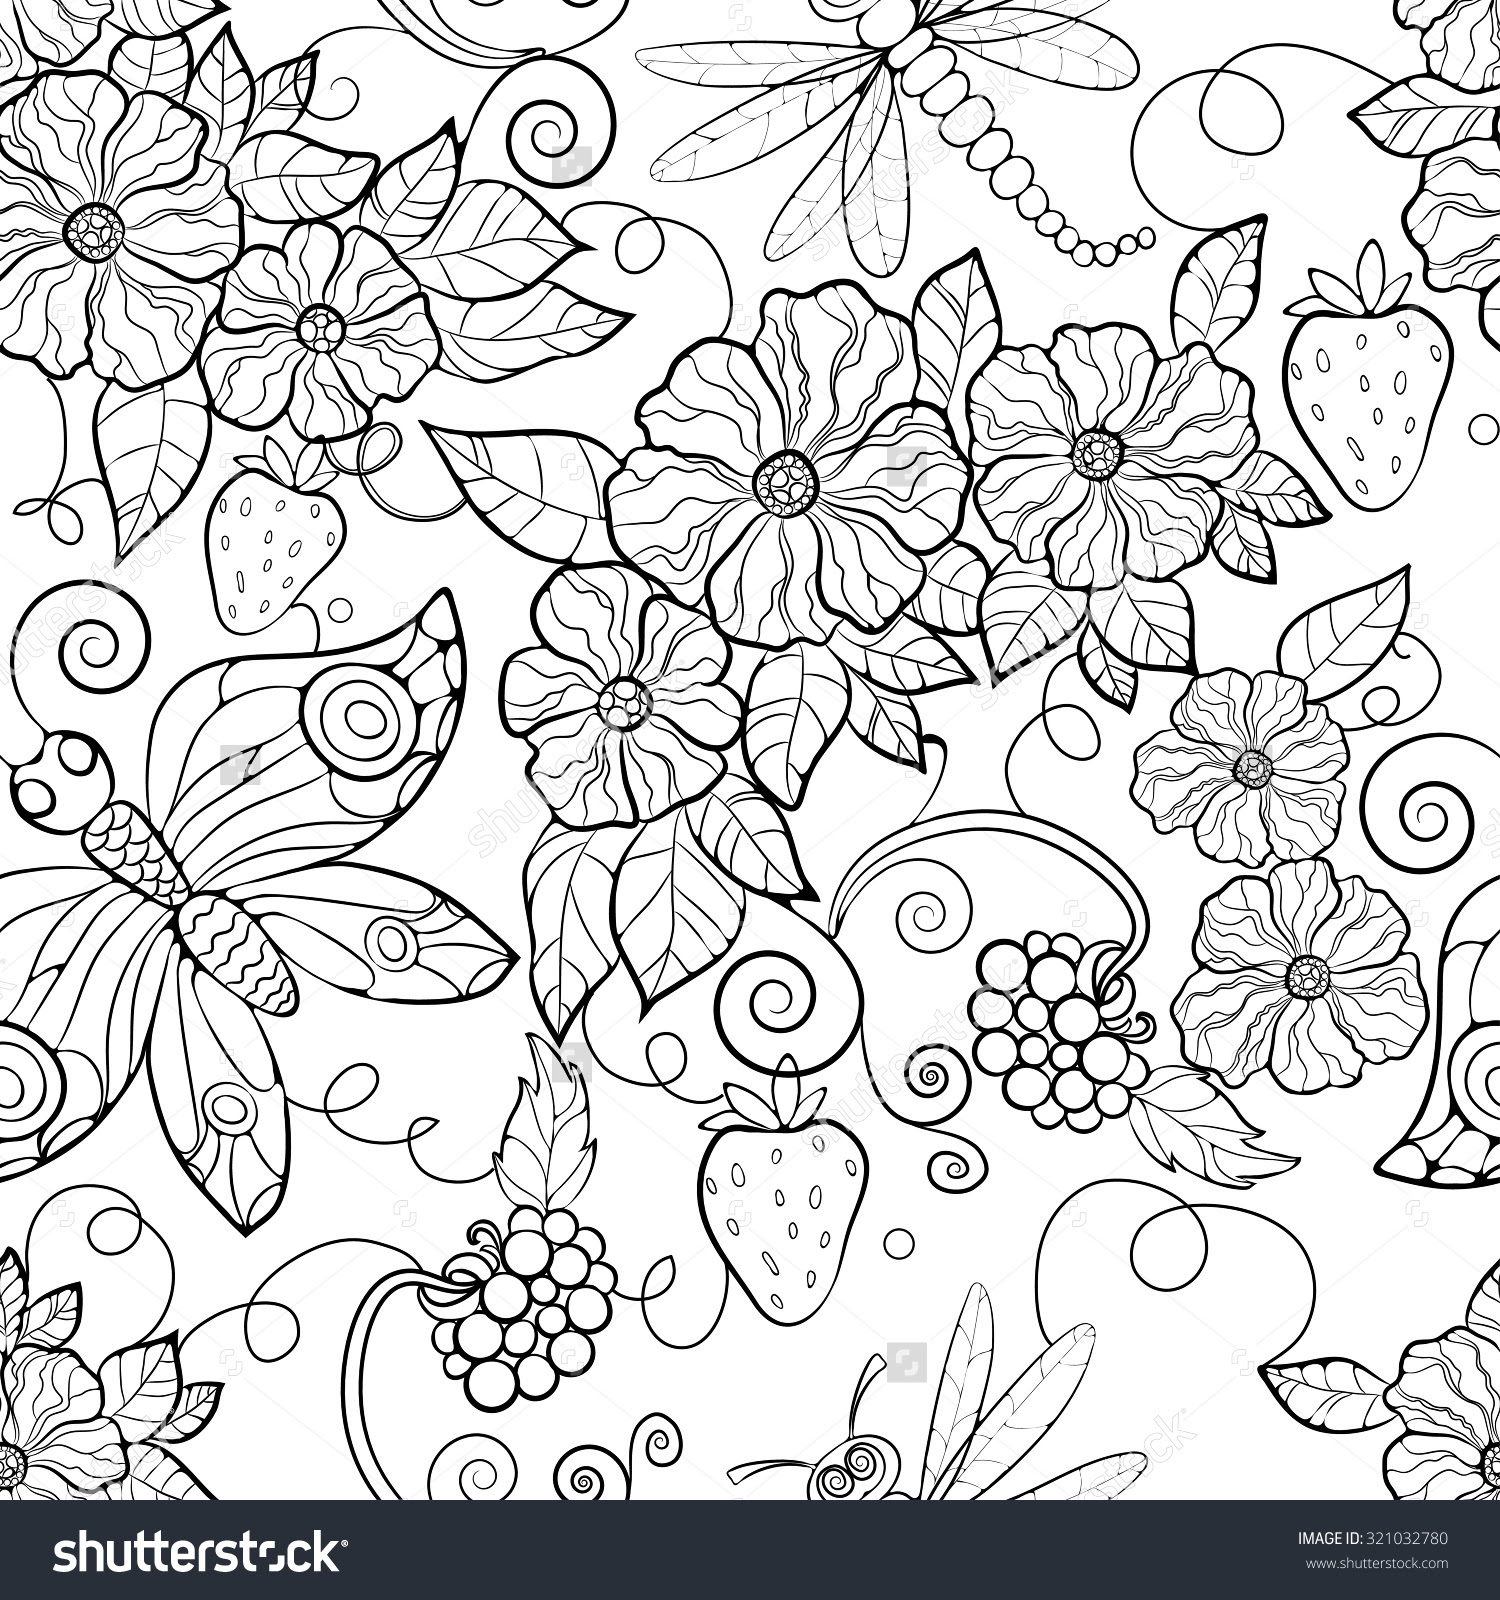 540 Top Free Printable Coloring Pages For Adults Roses Pictures